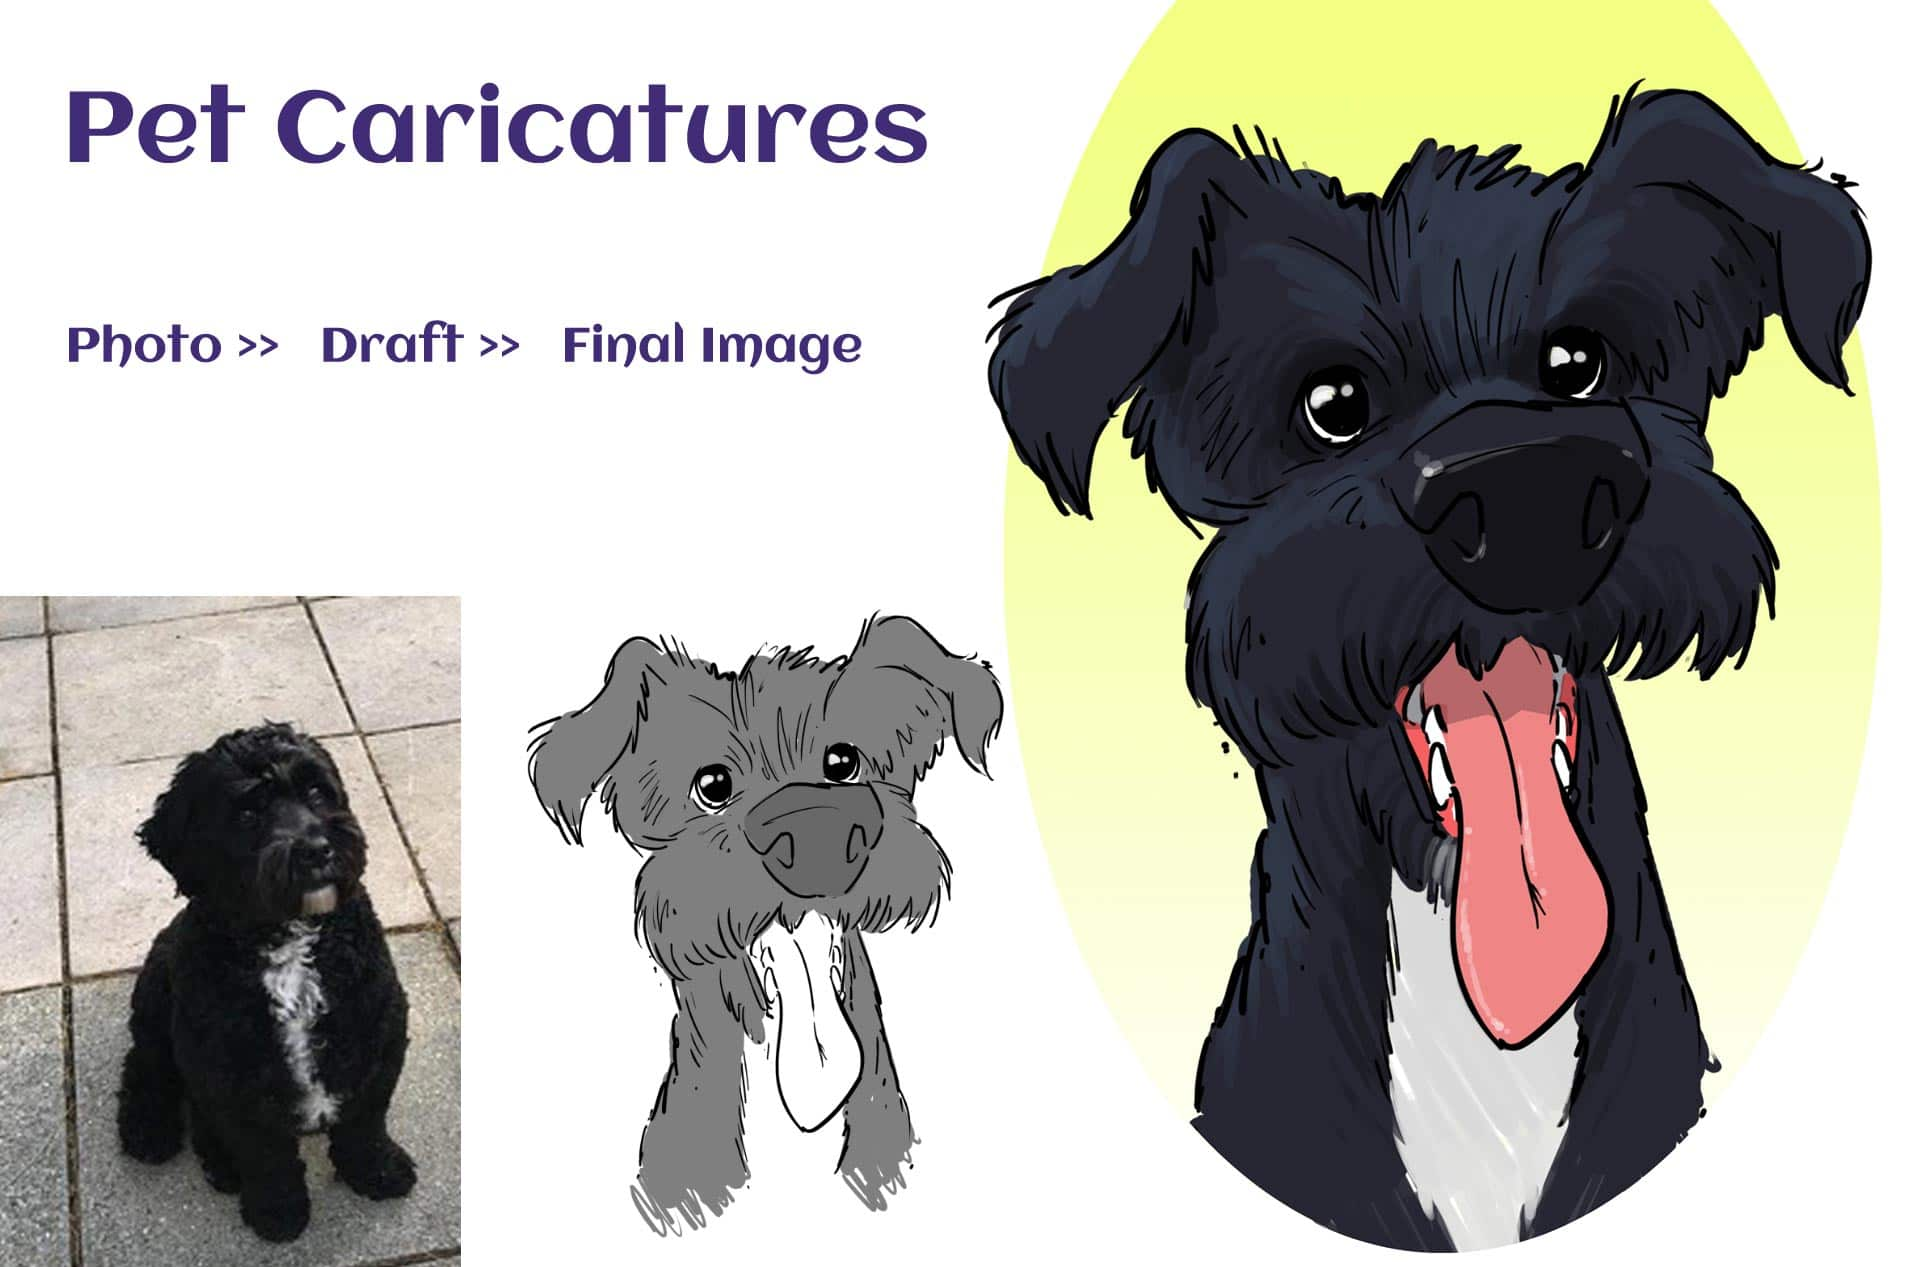 Pet Caricatures from photos